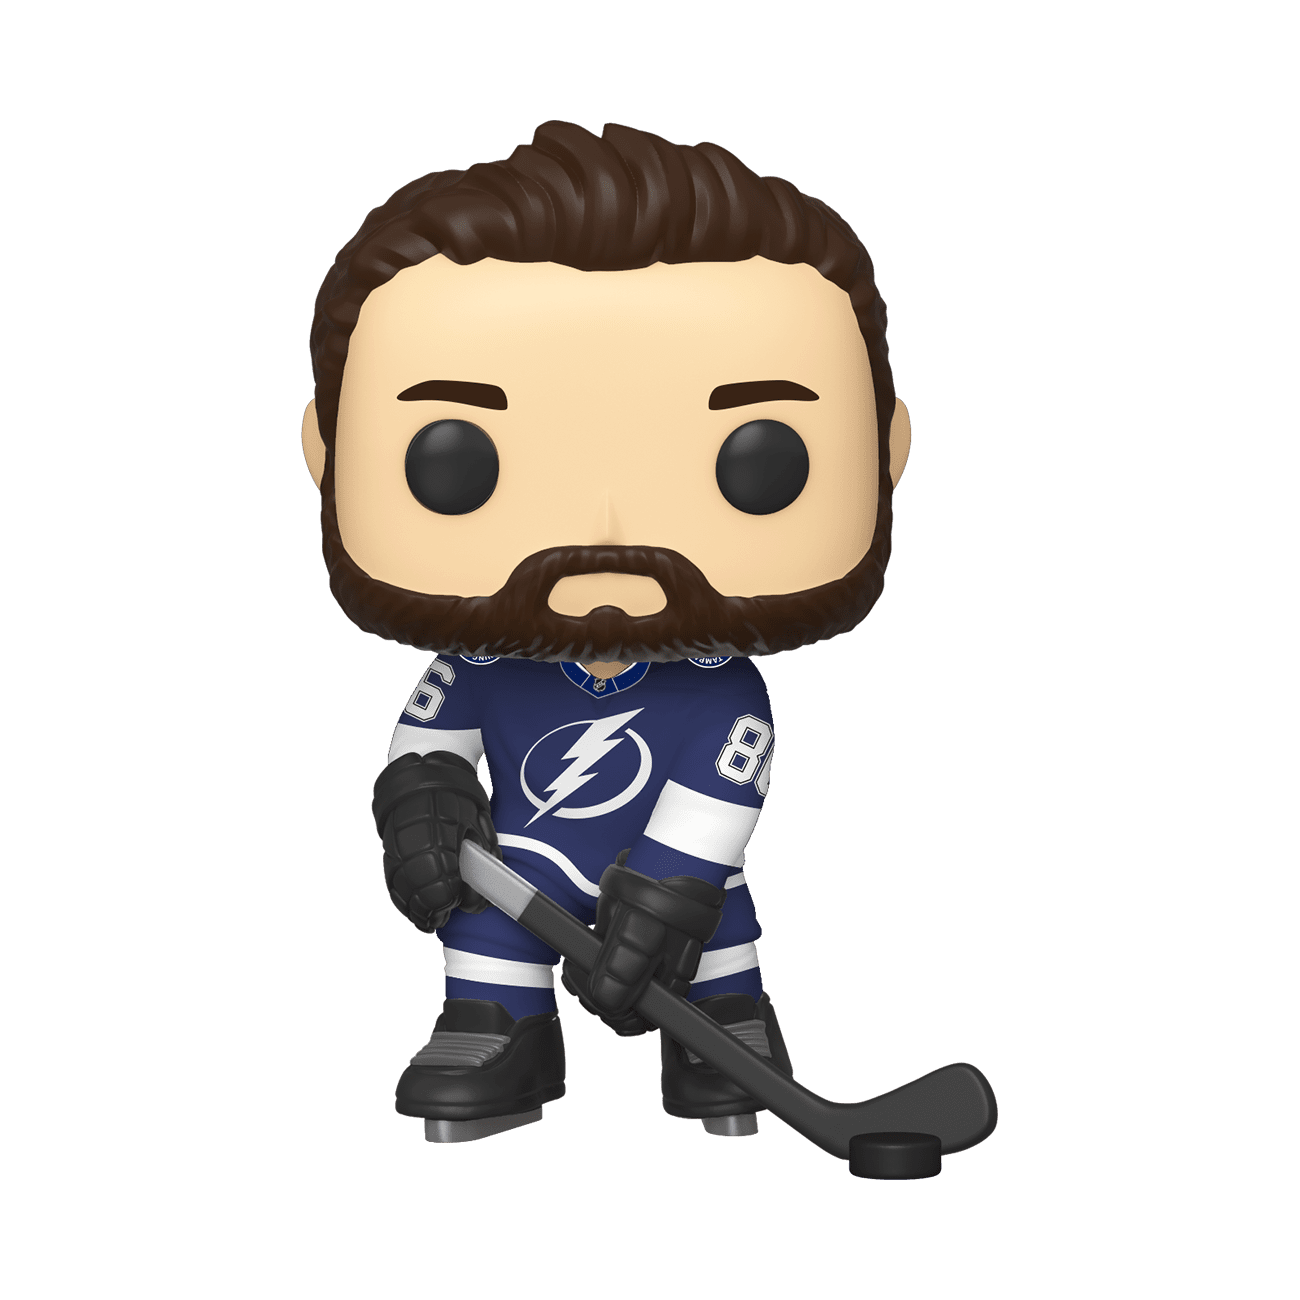 44114_NHL_Nikita_Lightning_POP_GLAM-WEB.png